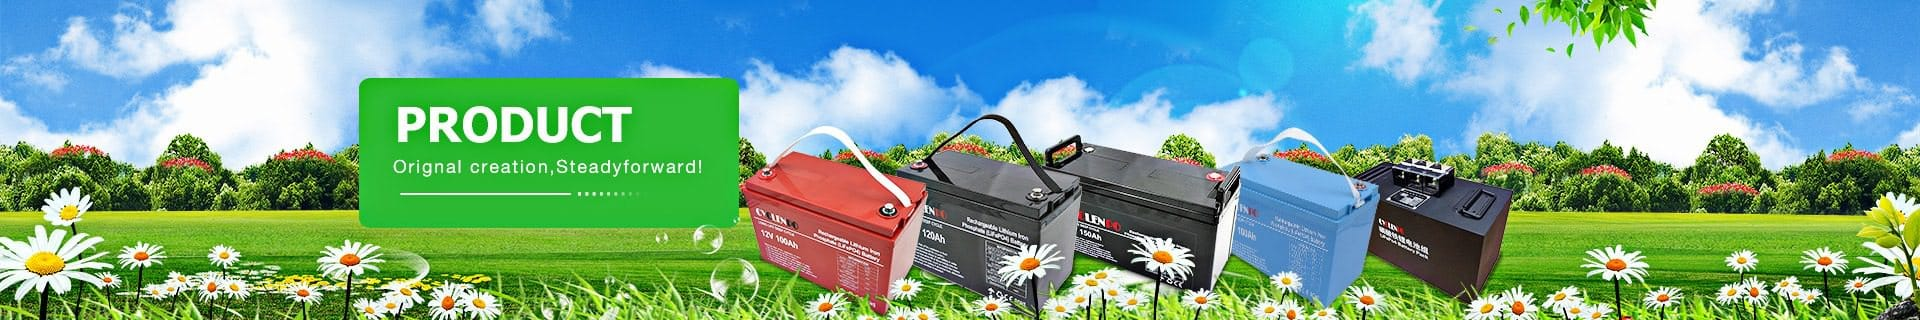 Lifepo4 12V 100Ah Lithium Ion Battery Price - Cyclen Lifepo4 Factory